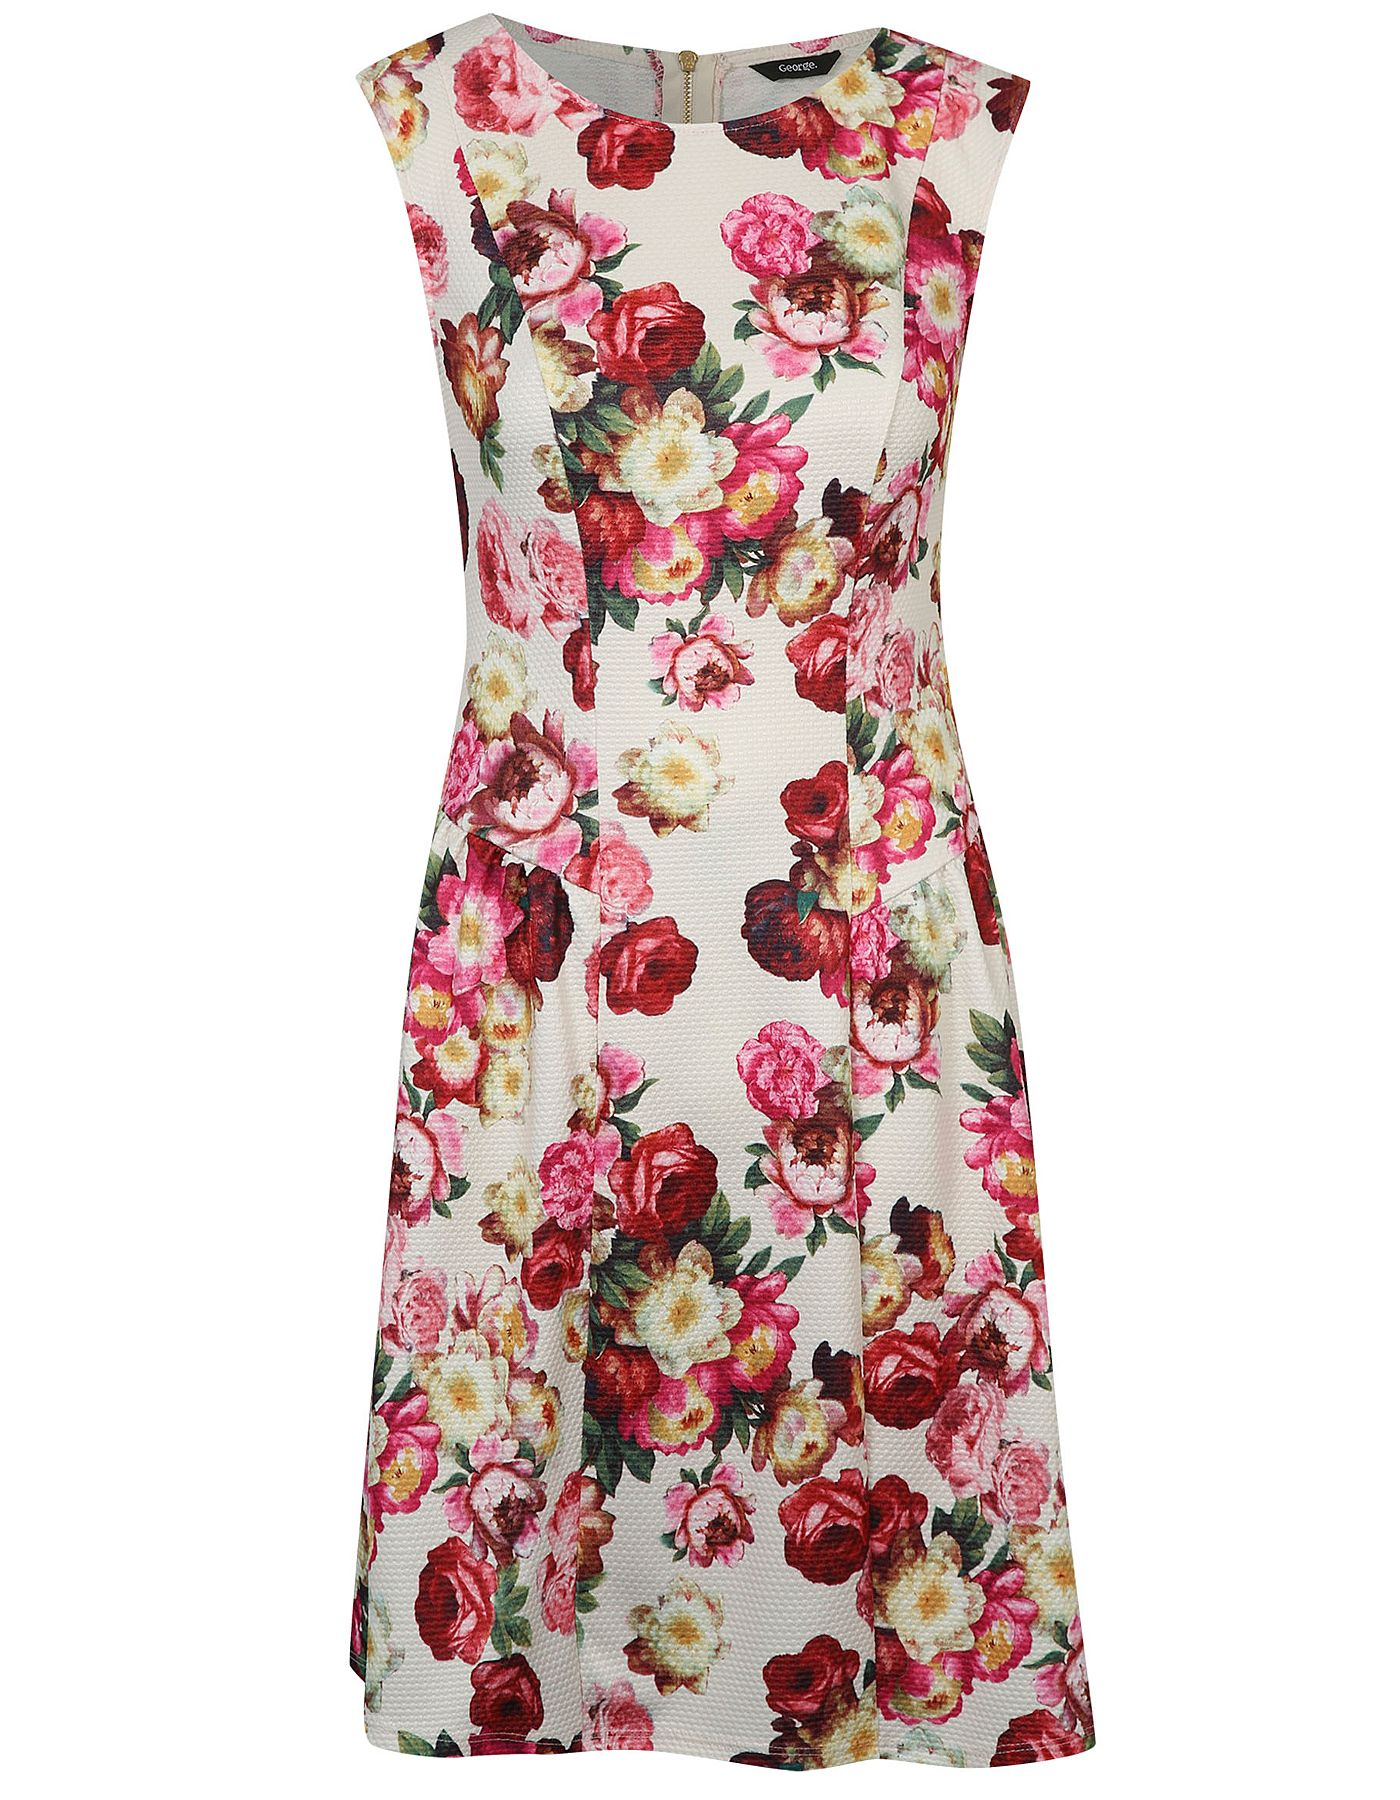 Textured Floral Print Drop Waist Fit and Flare Dress | Women ...